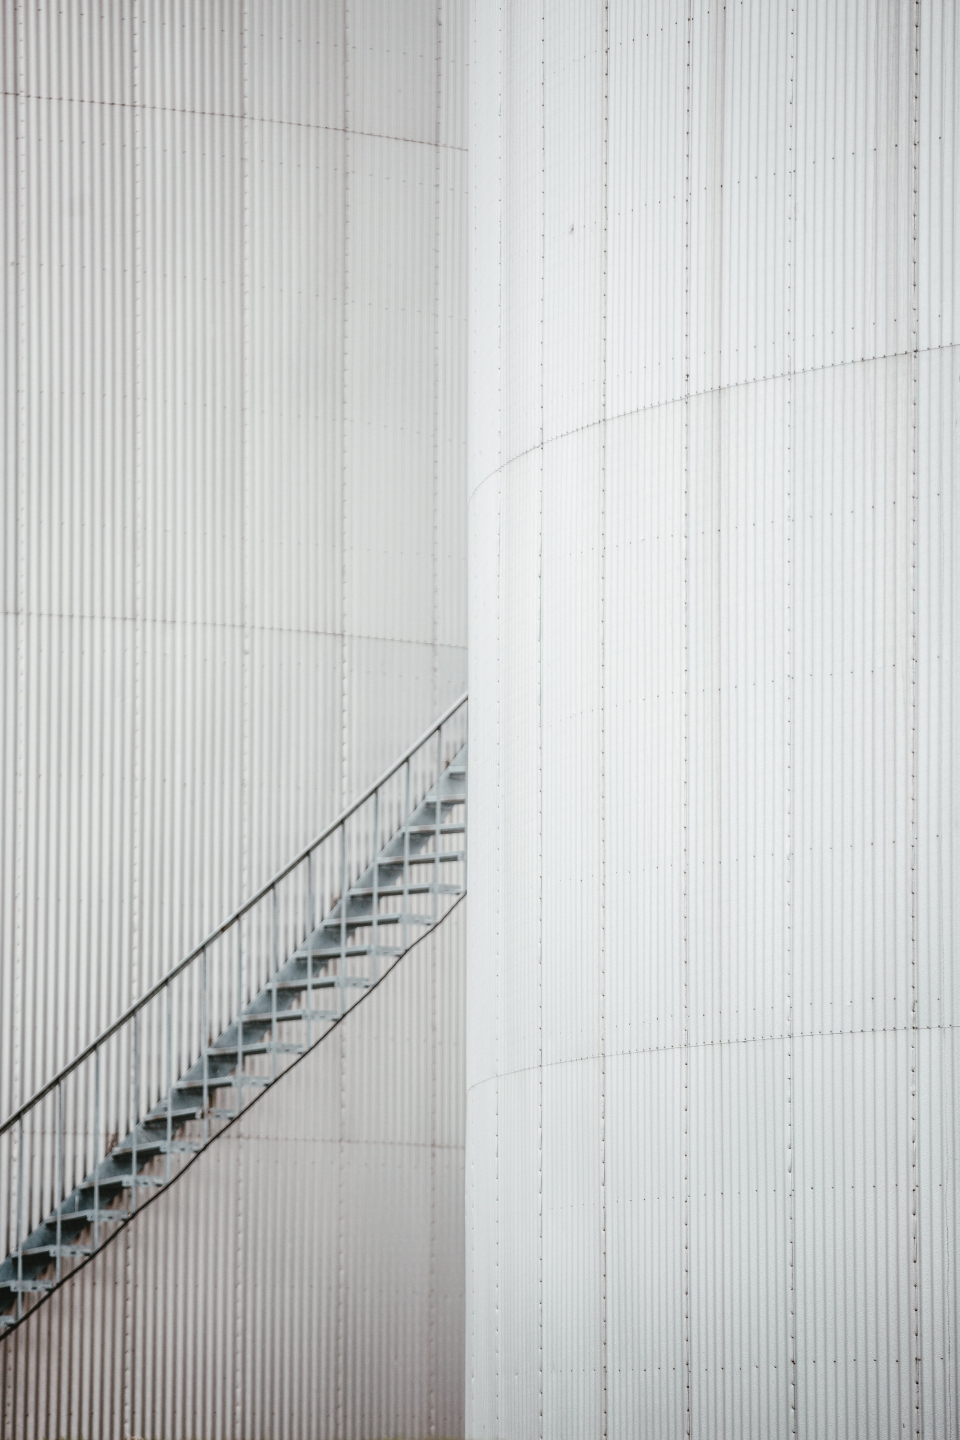 industrial tank oil stairs spiral architecture industry art white storage metal energy steel fuel abstract iron